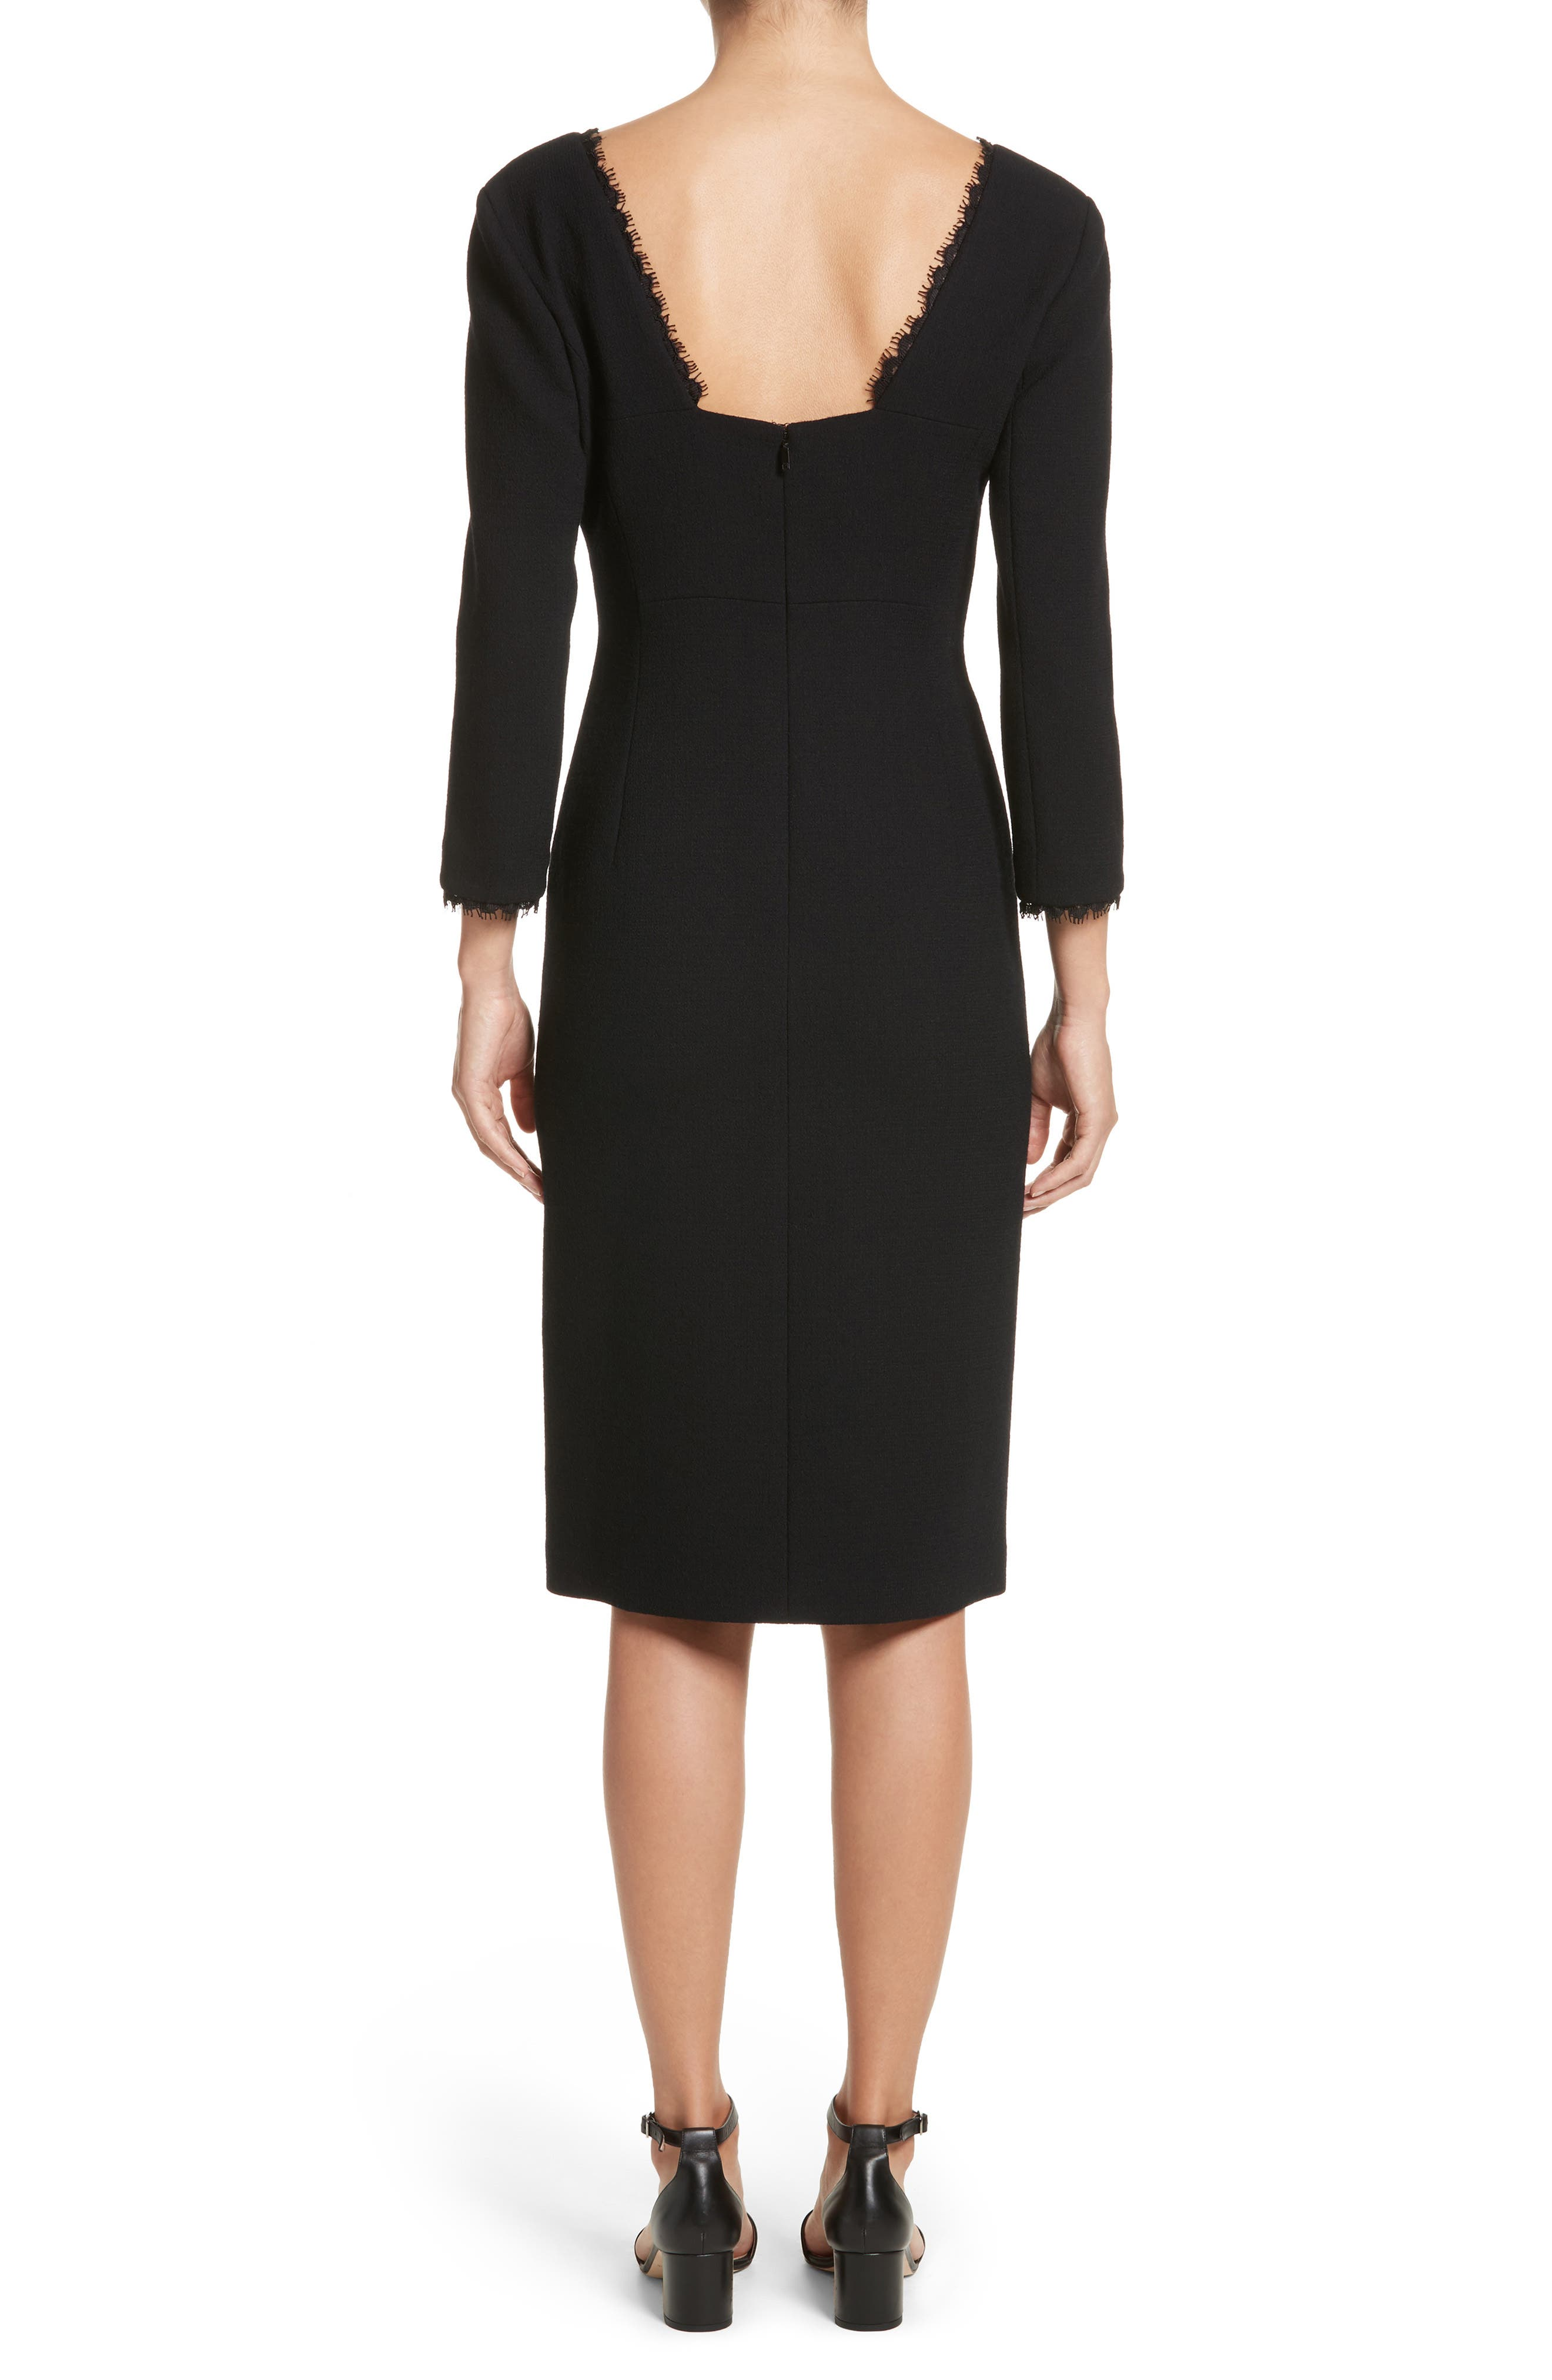 Shandy Lace Trim Wool Dress,                             Alternate thumbnail 2, color,                             001